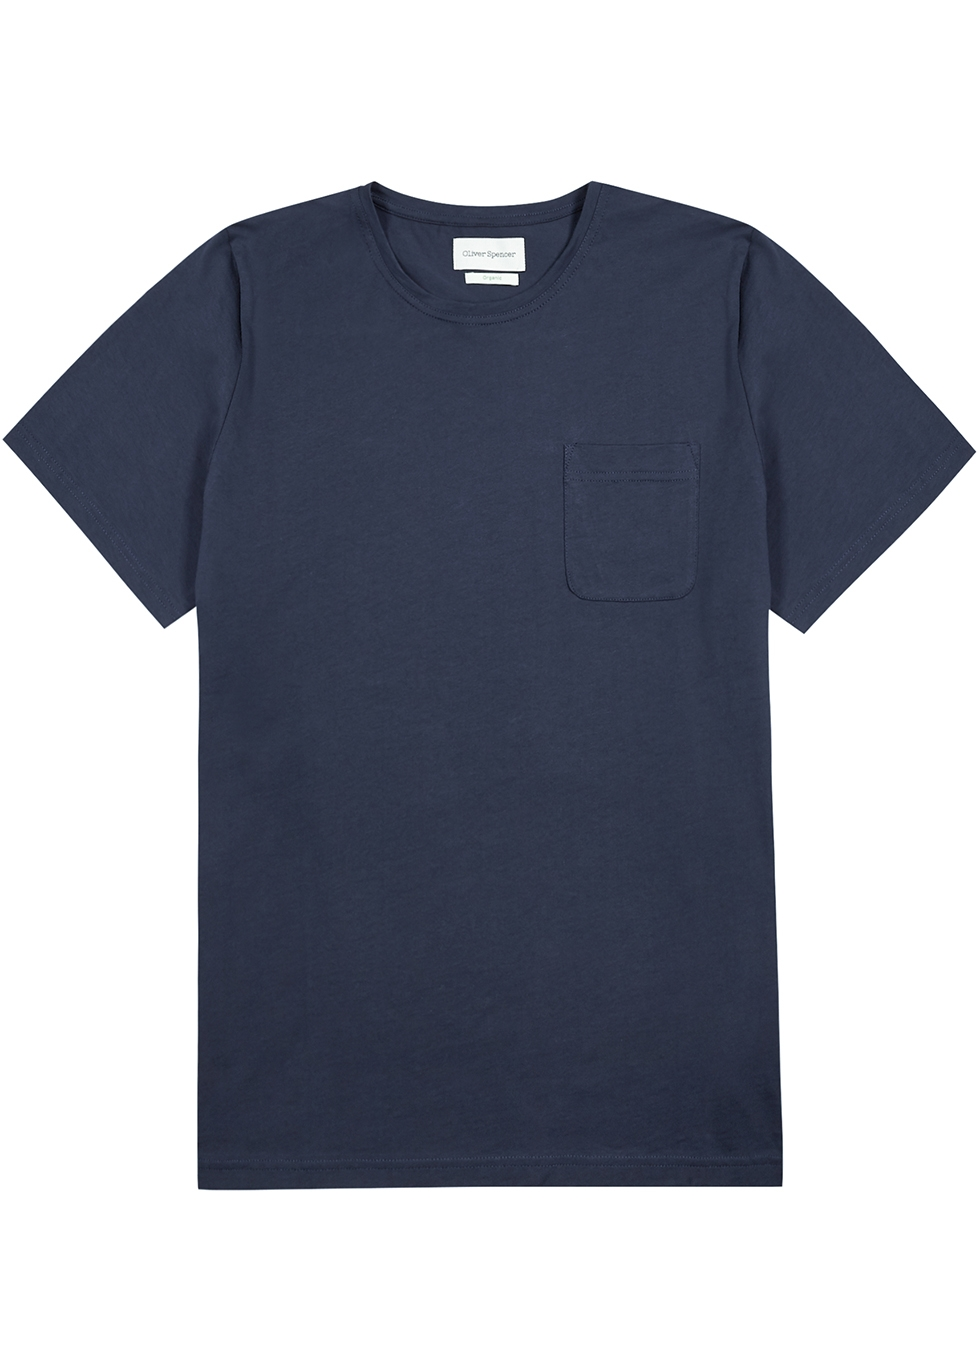 Conway navy cotton T-shirt